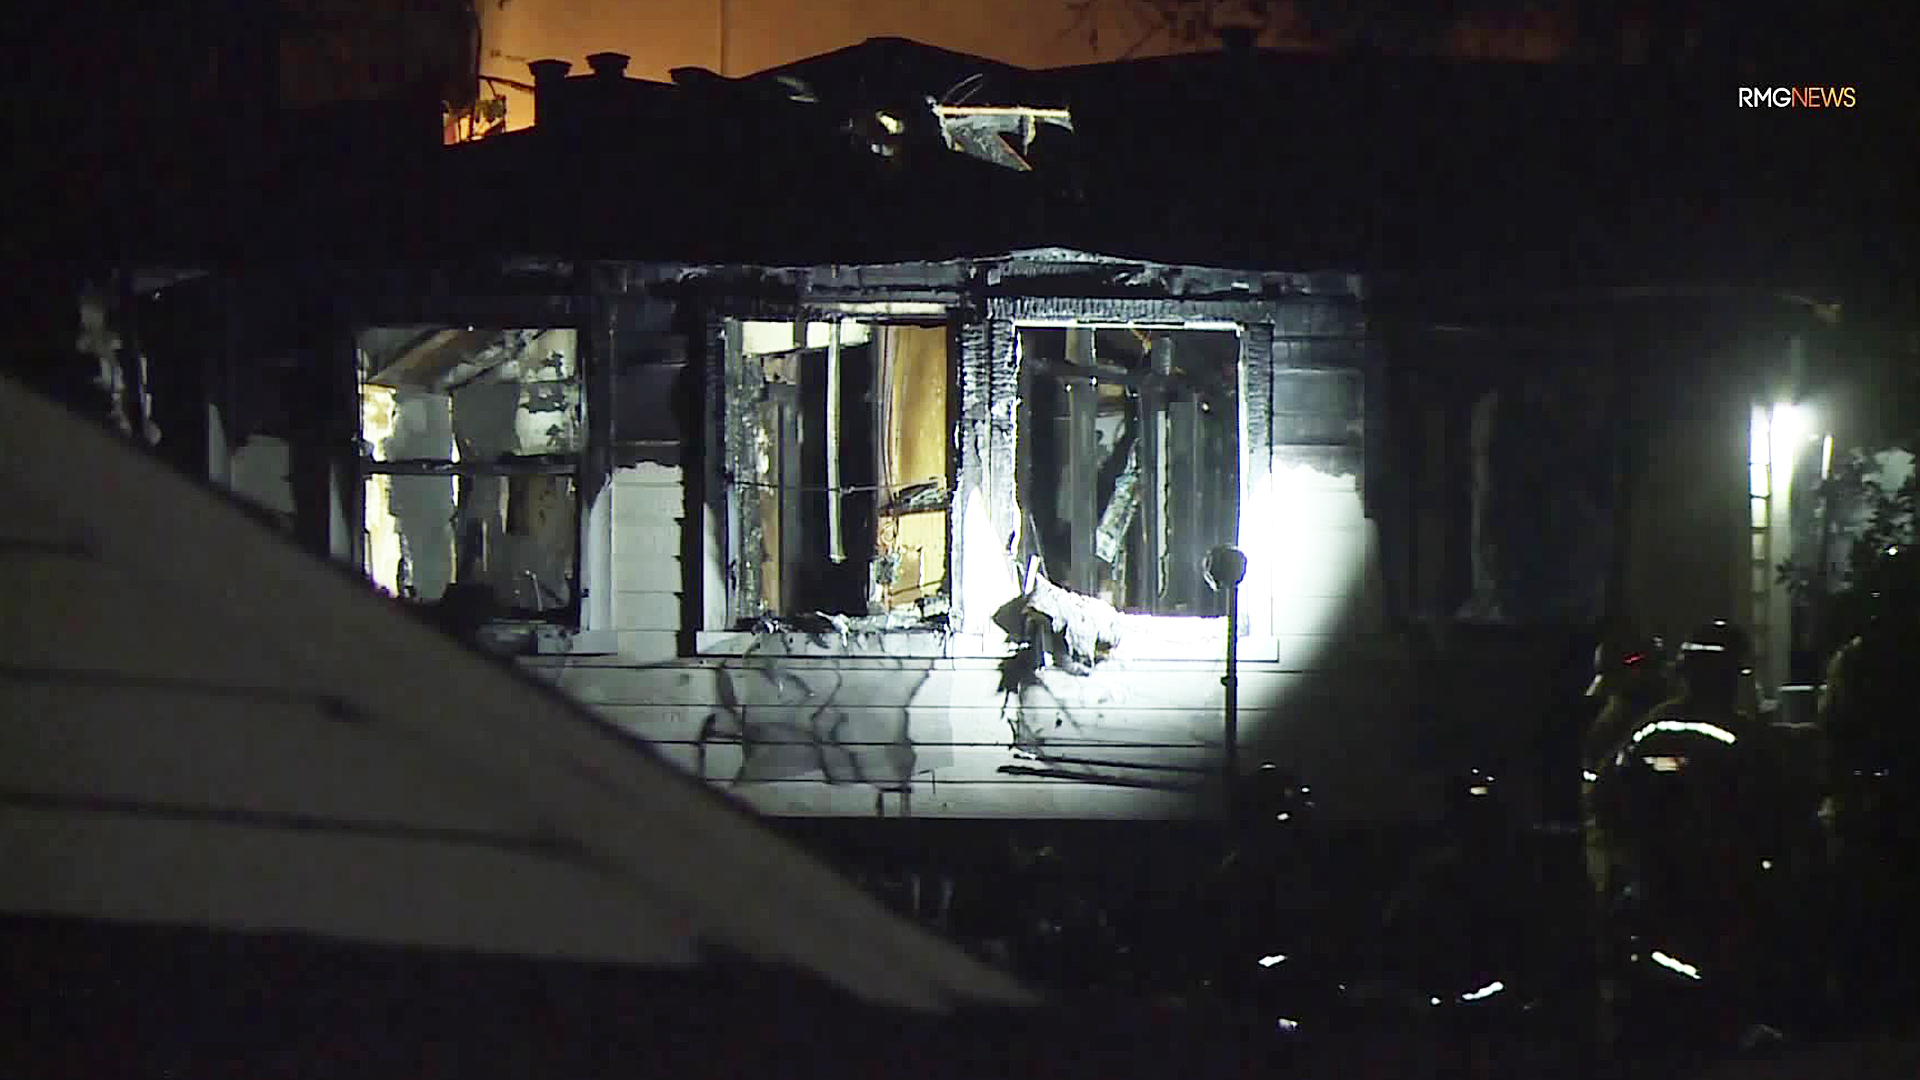 An investigation is underway into a fatal house fire in La Cañada Flintridge on Nov. 18, 2019. (Credit: RMG News)